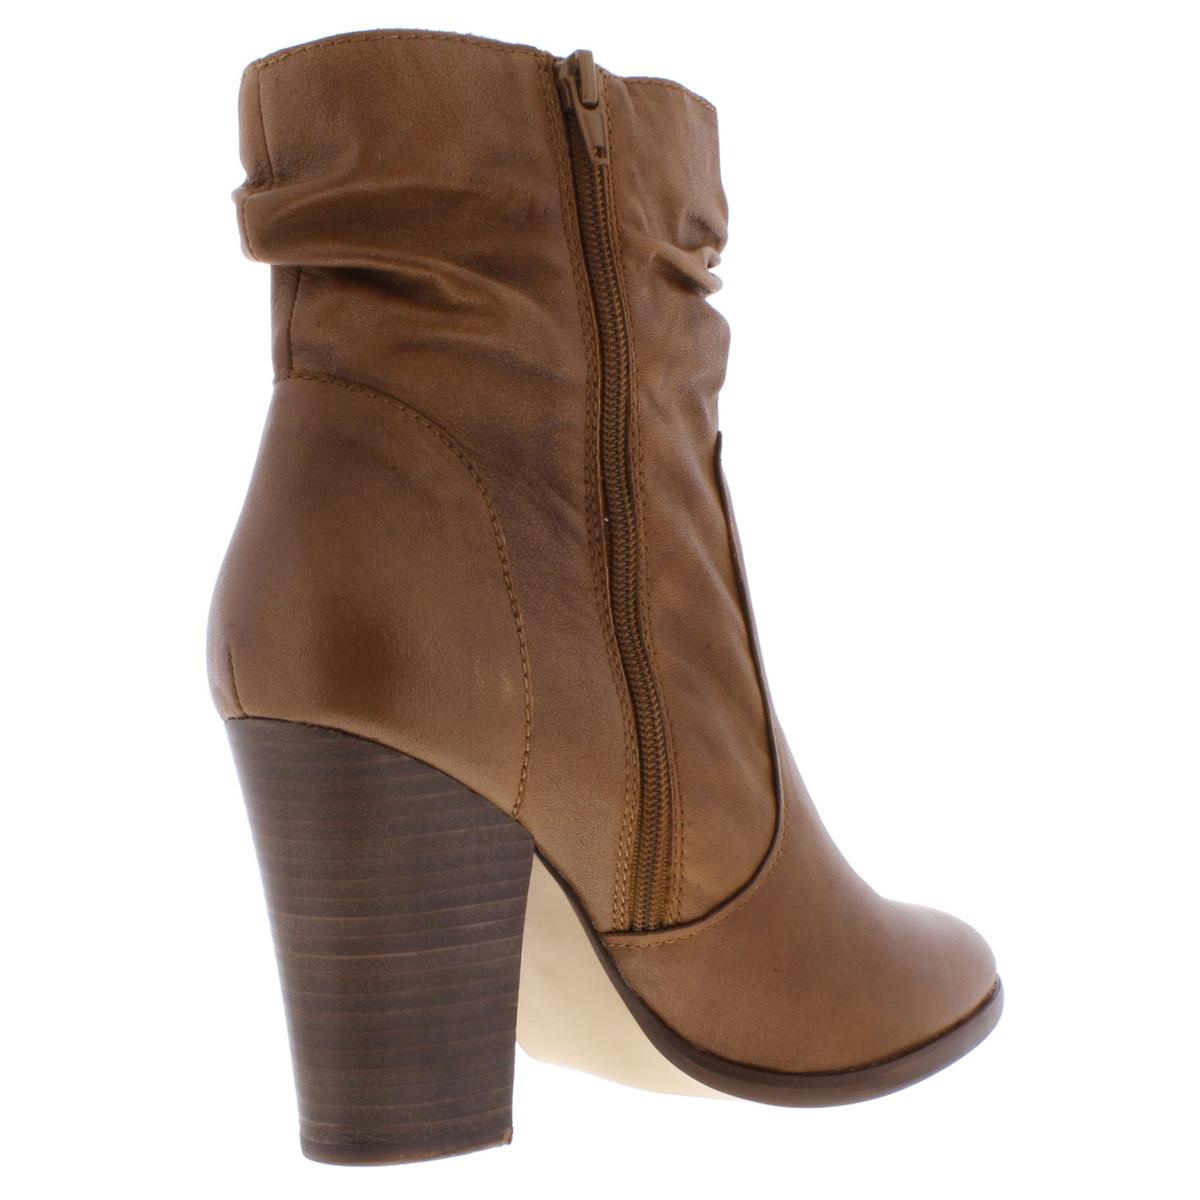 Steve Madden Womens Hunk Leather Slouchy Stacked Heel Booties Shoes BHFO 9980